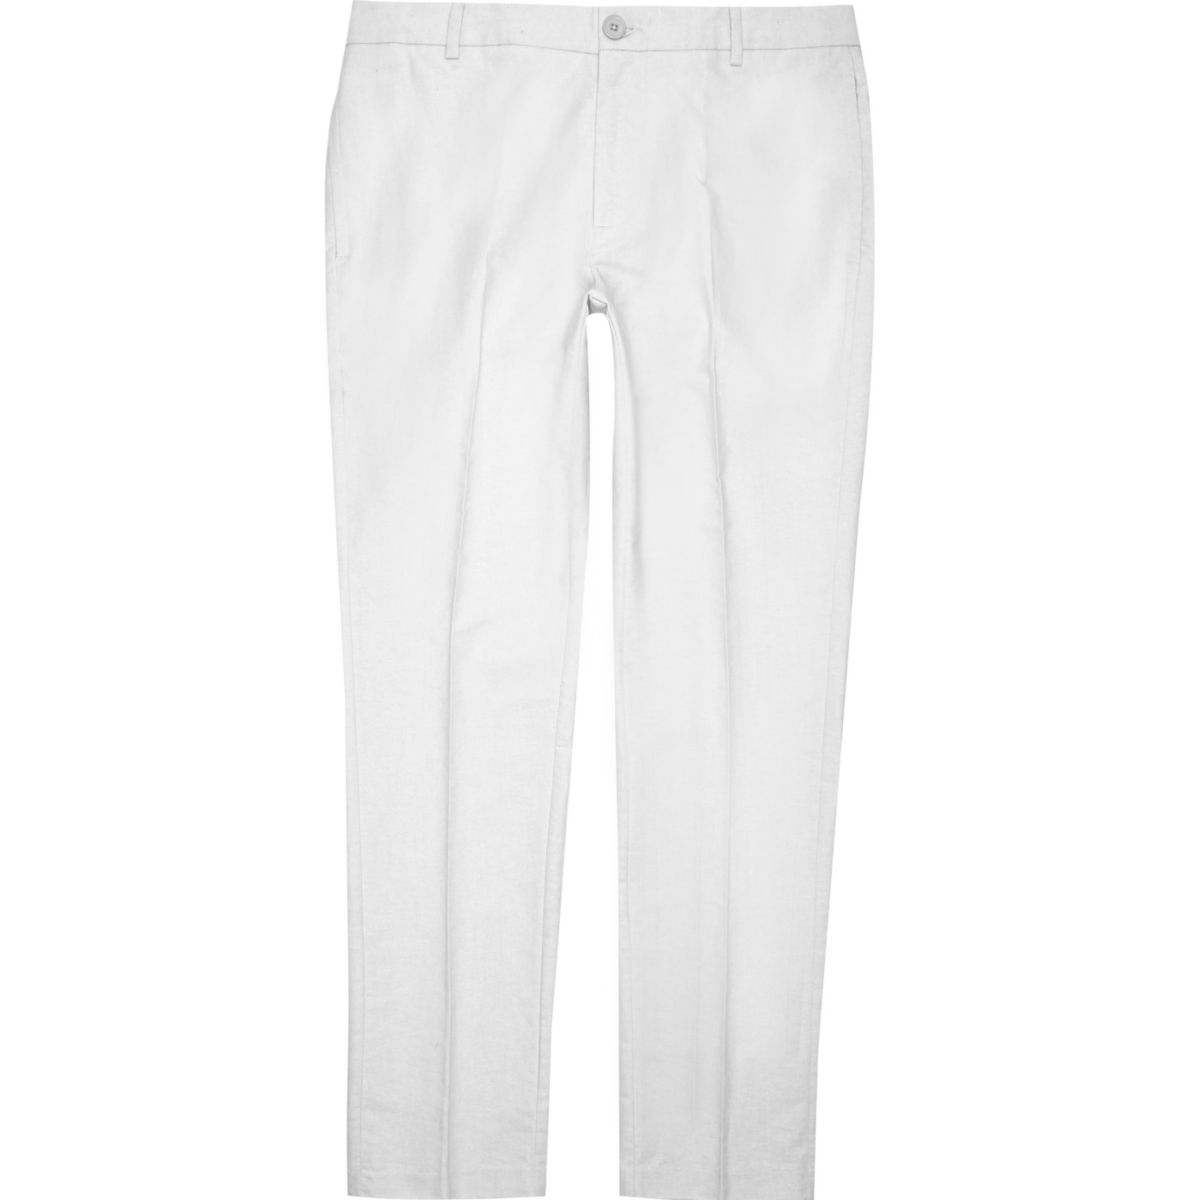 Stone grey cotton trousers